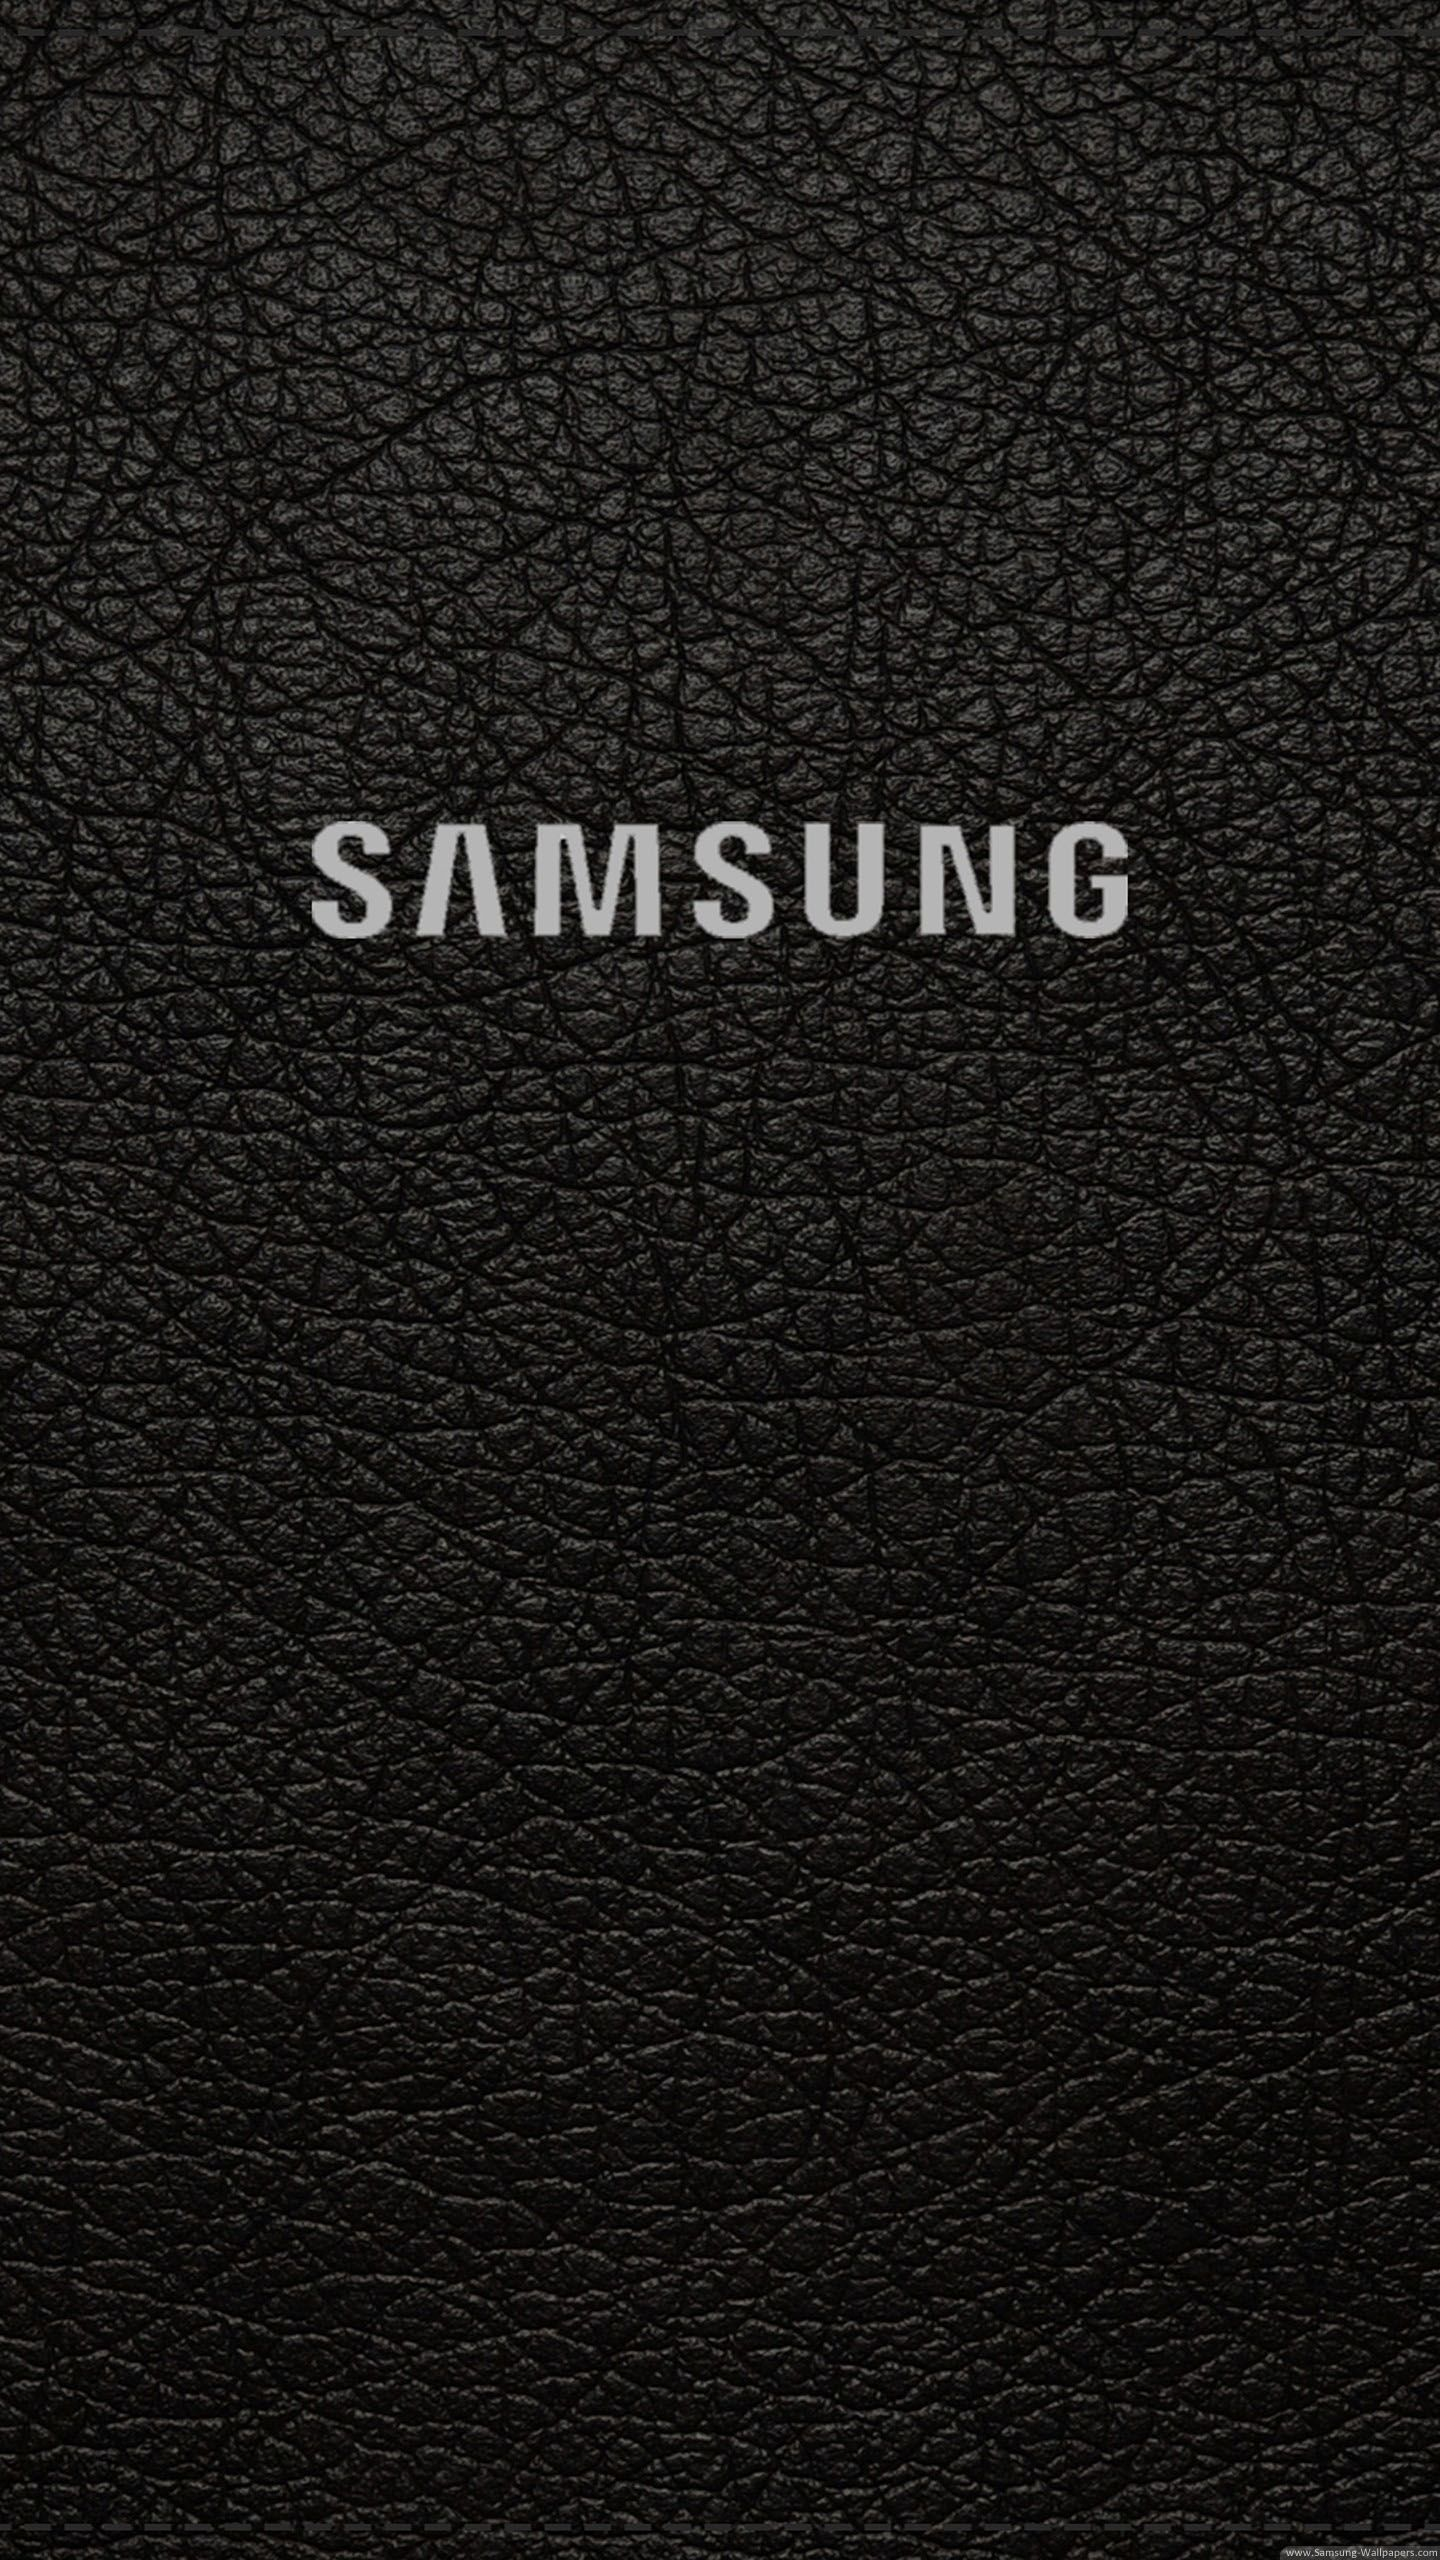 Samsung Black Wallpapers - Top Free Samsung Black Backgrounds